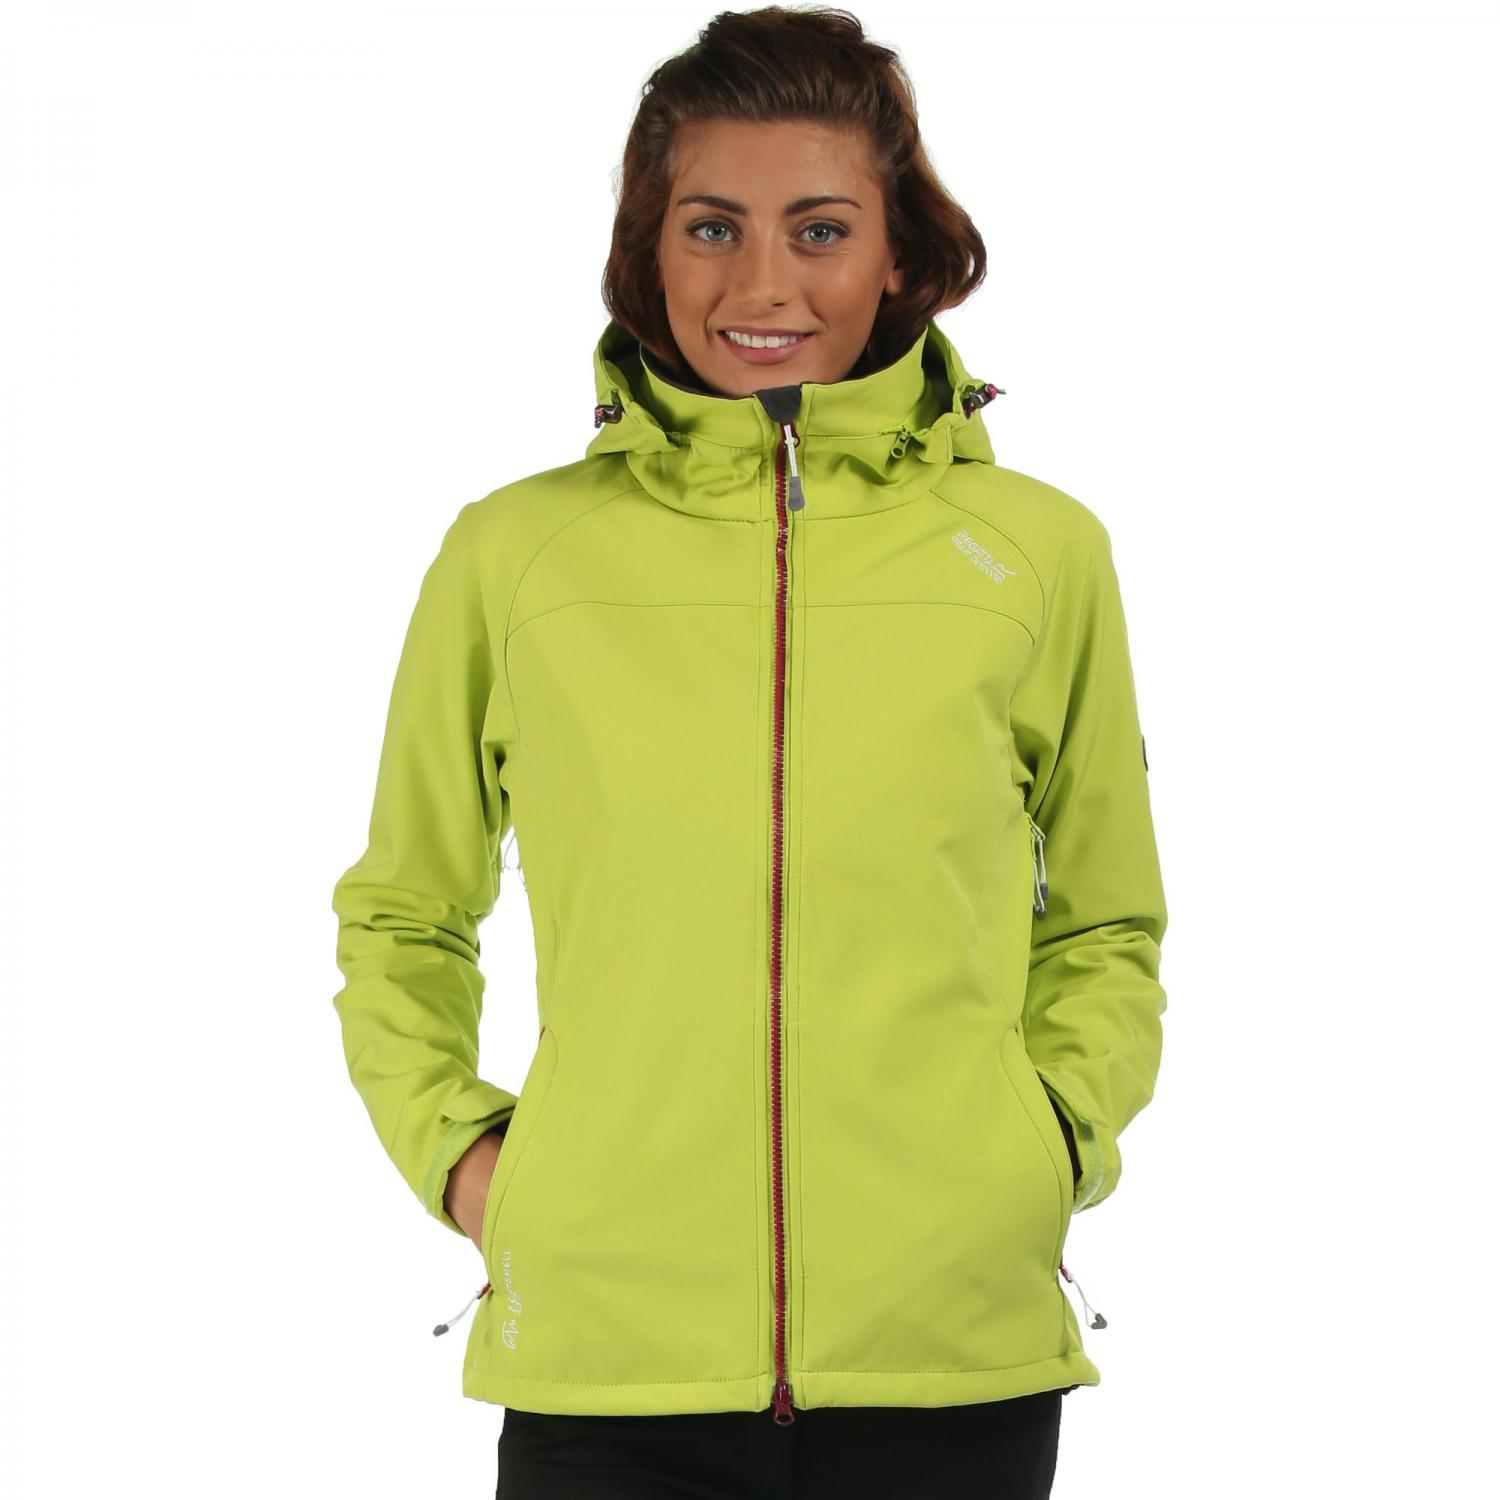 Desoto II Softshell Jacket Lime Zest Steel